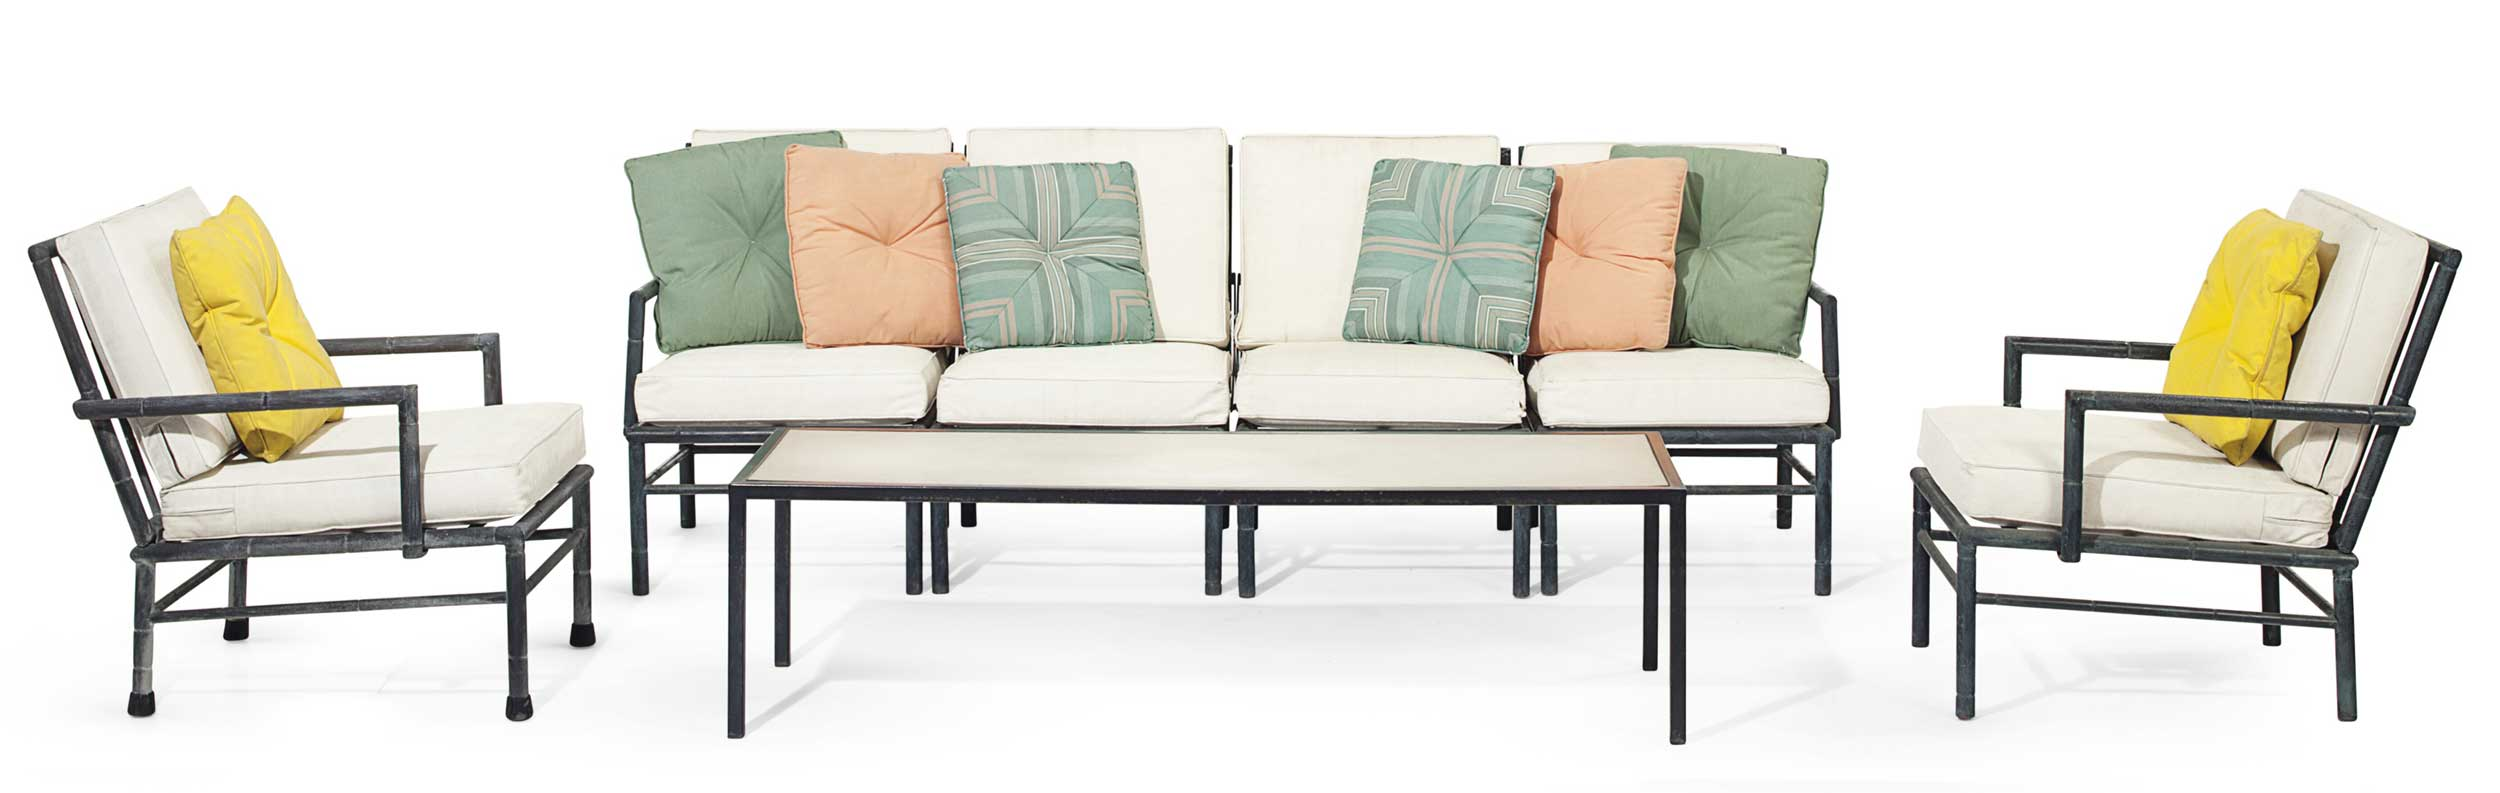 <b>A Suite of Bronze Patinated Metal Furniture</b><br/>by William Haines, Circa 1960<br/>Comprising a faux-bamboo sectional sofa, four armchairs and a coffee table